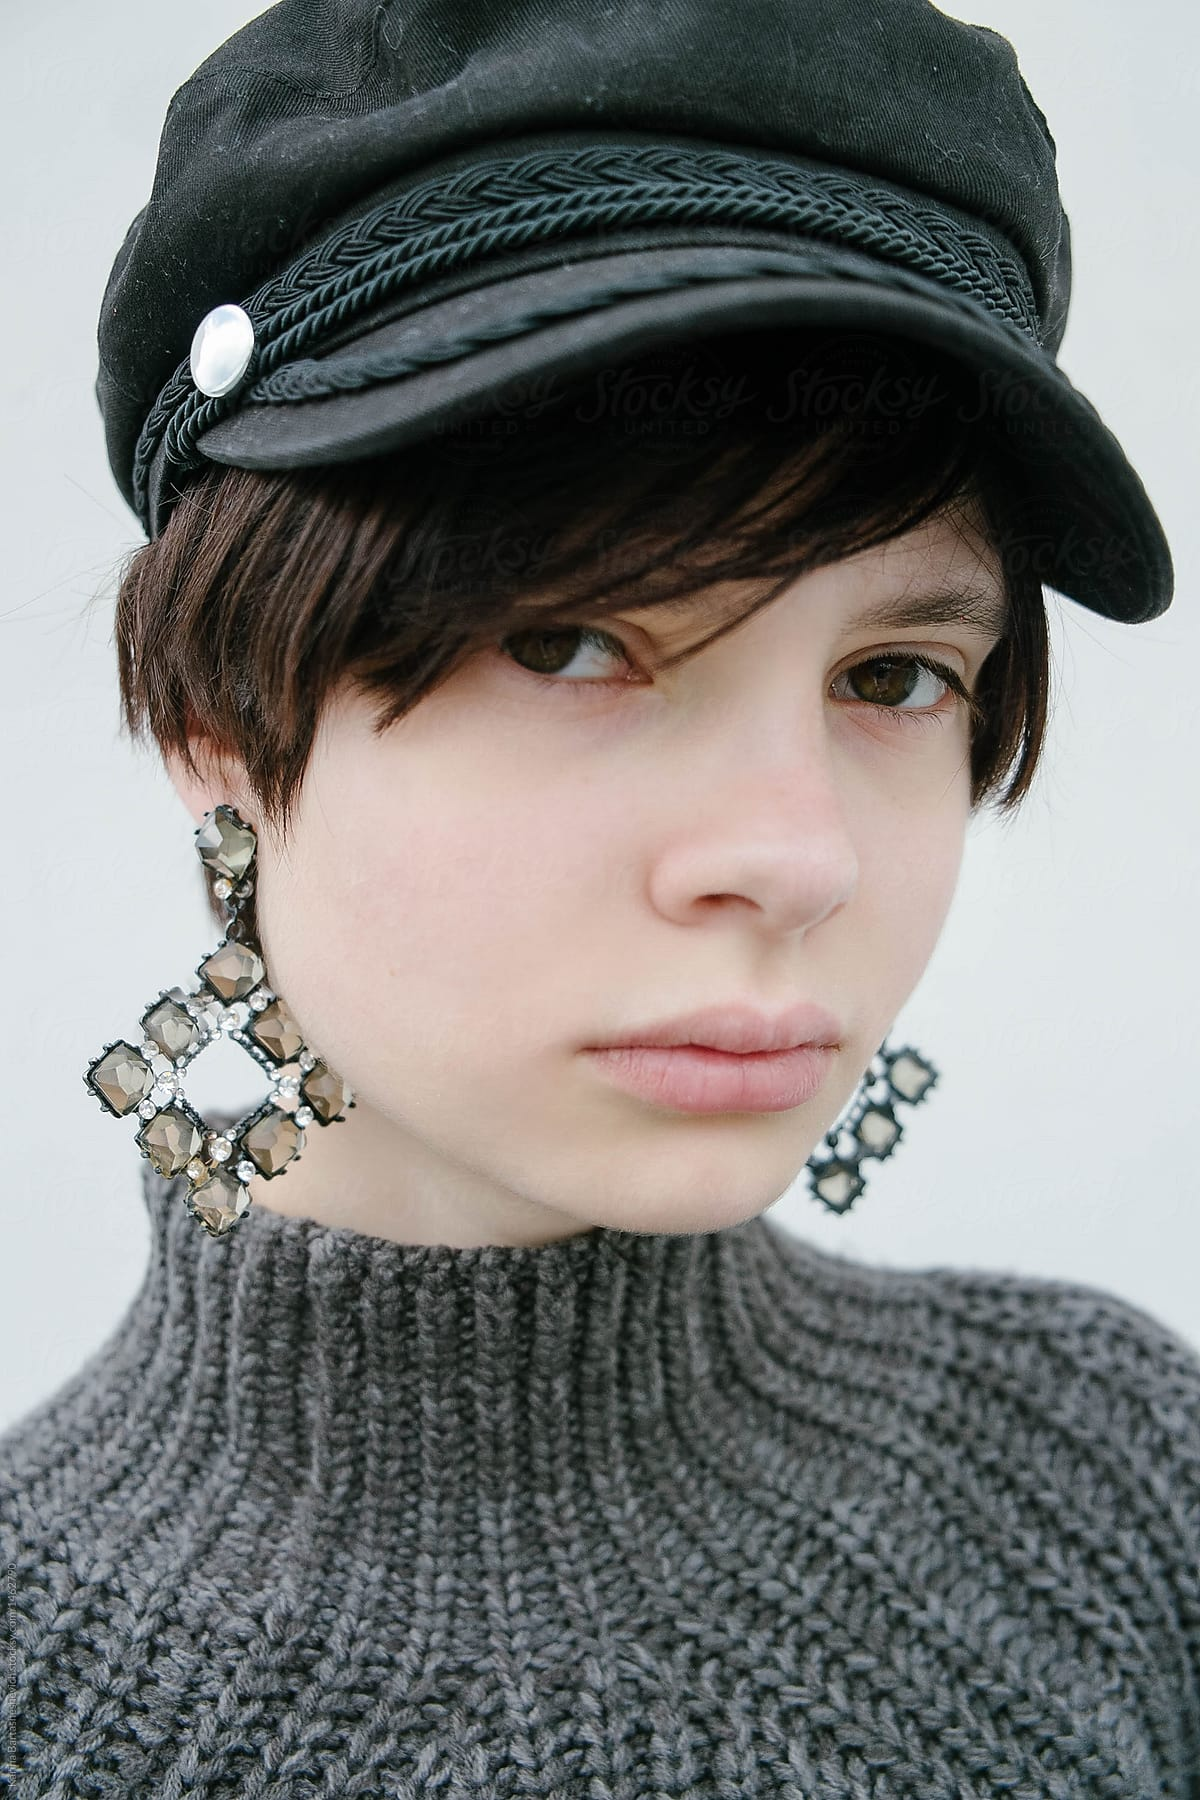 abaf4505be742 portrait of sophisticated young fashion girl with short hair with the hat  with earrings